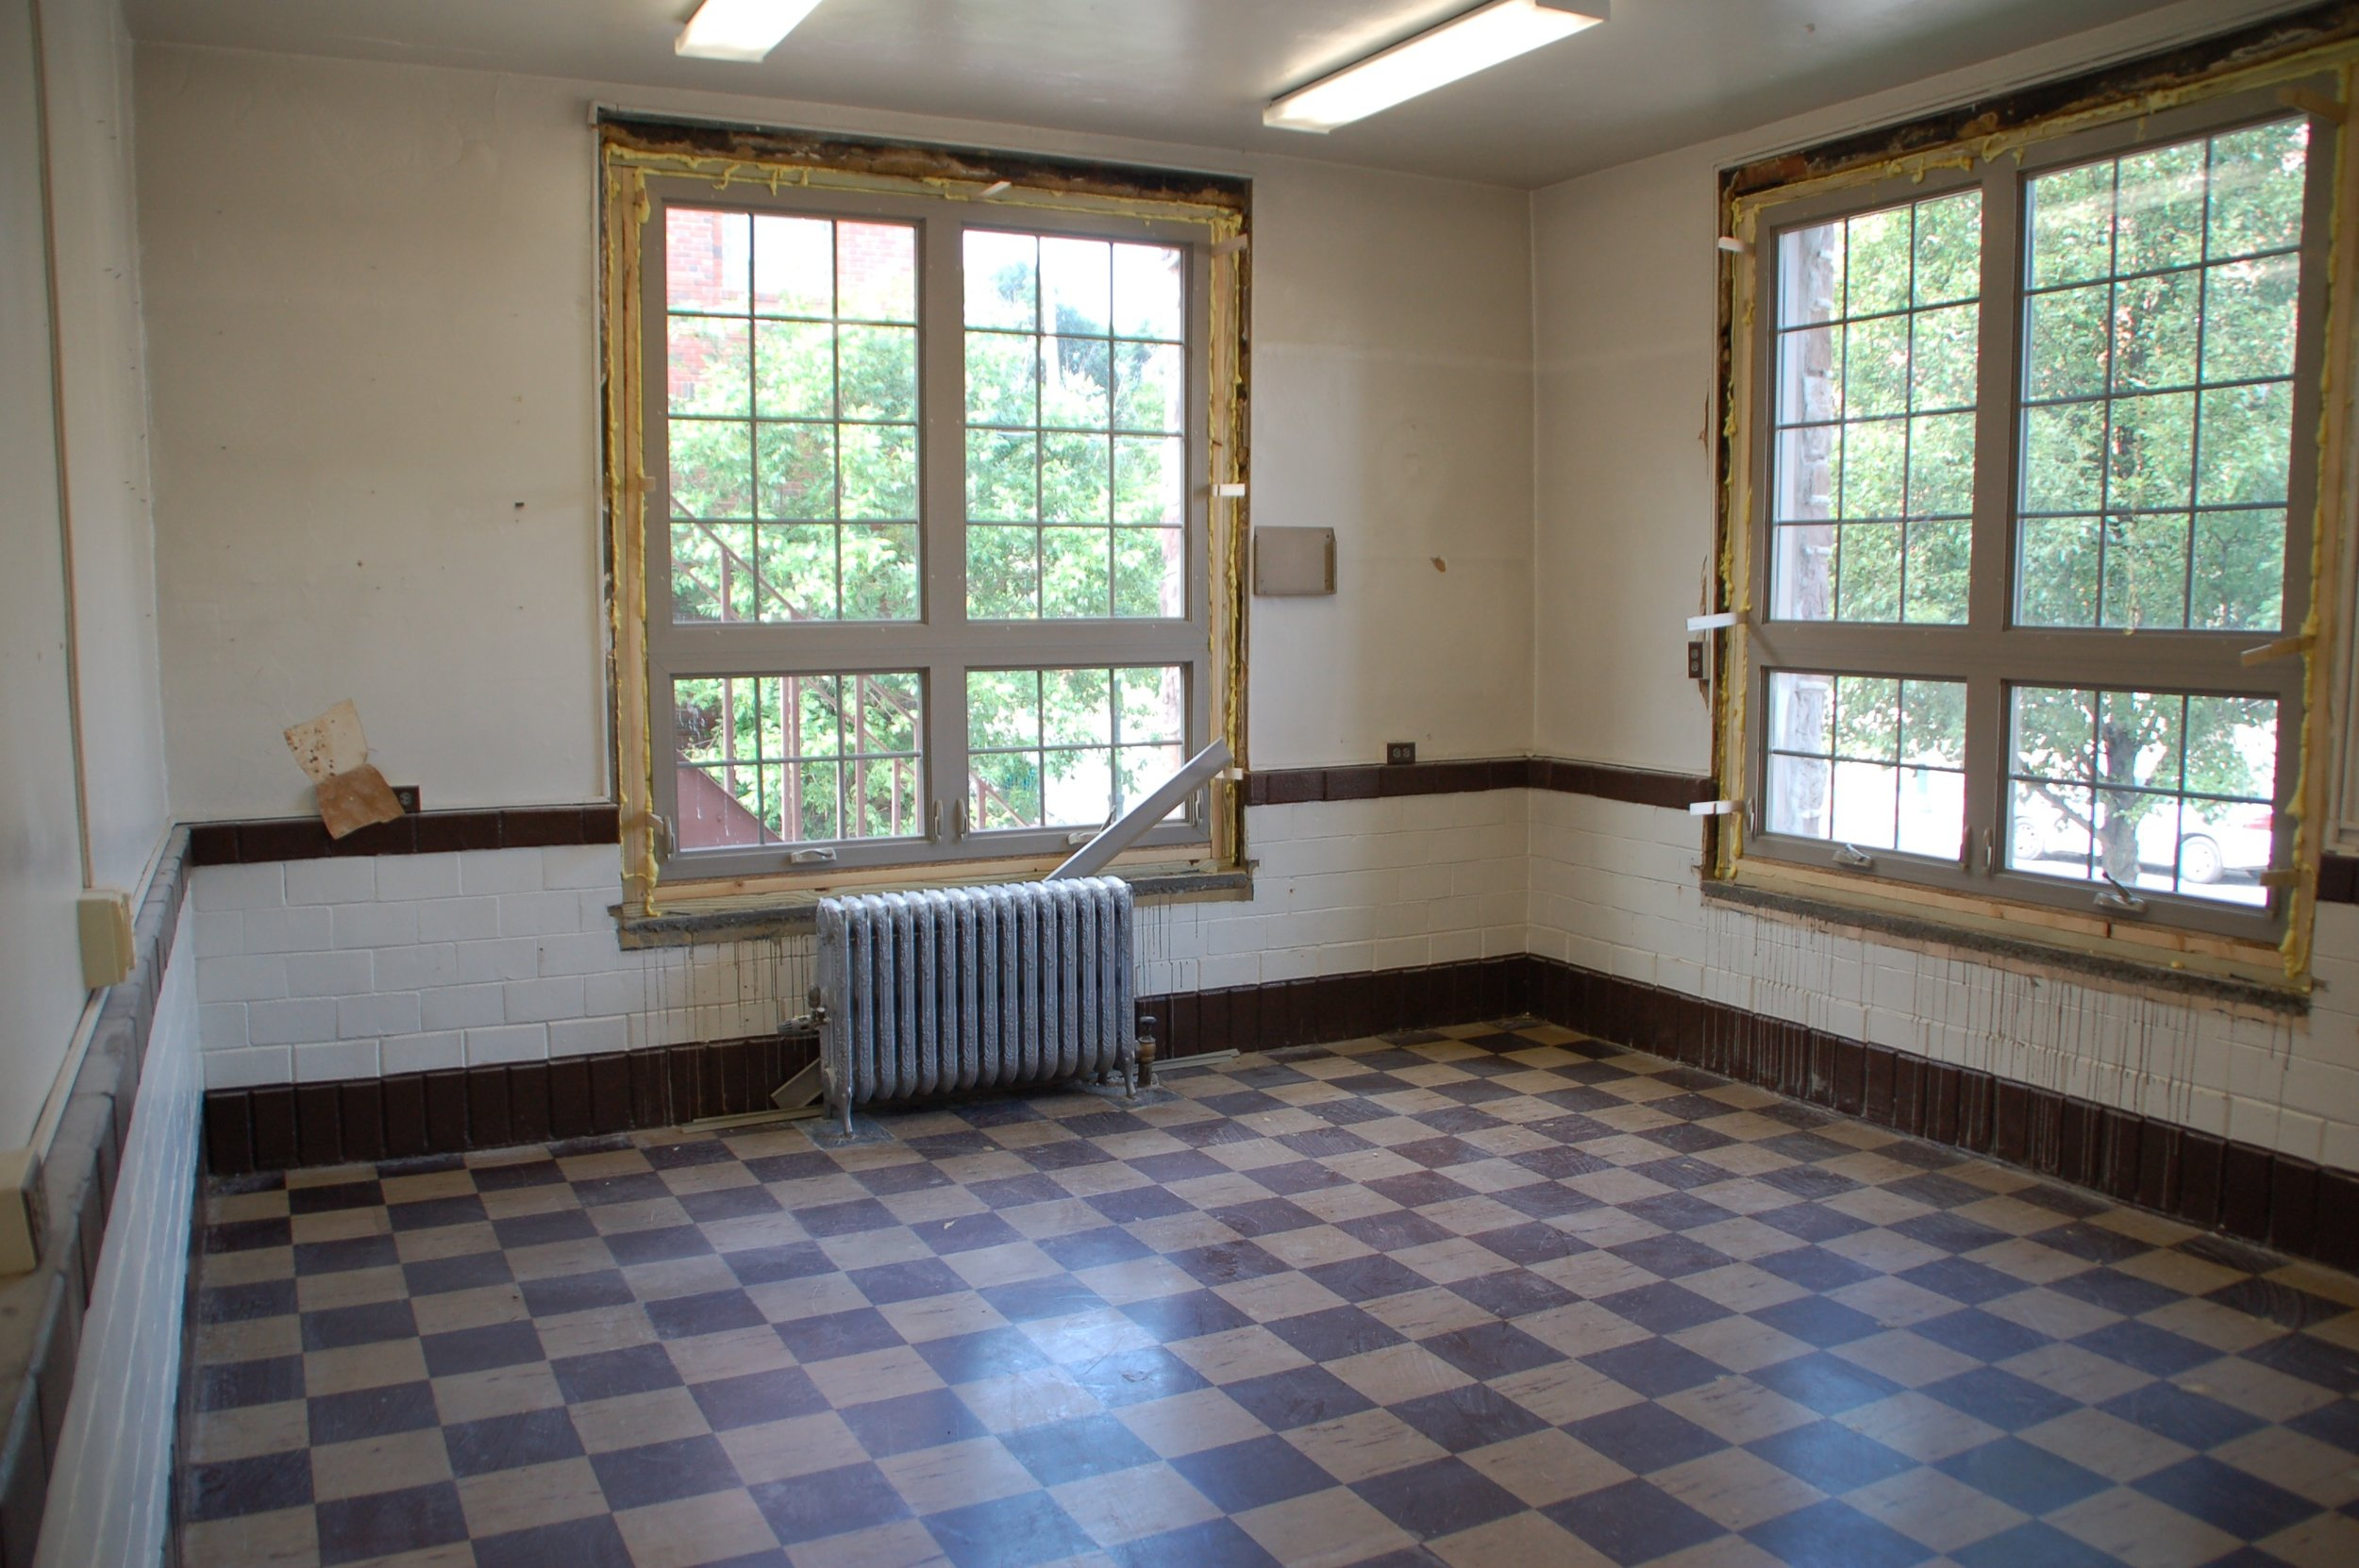 This is the other room that will join the previous picture to create a larger meeting space once we take out the wall.